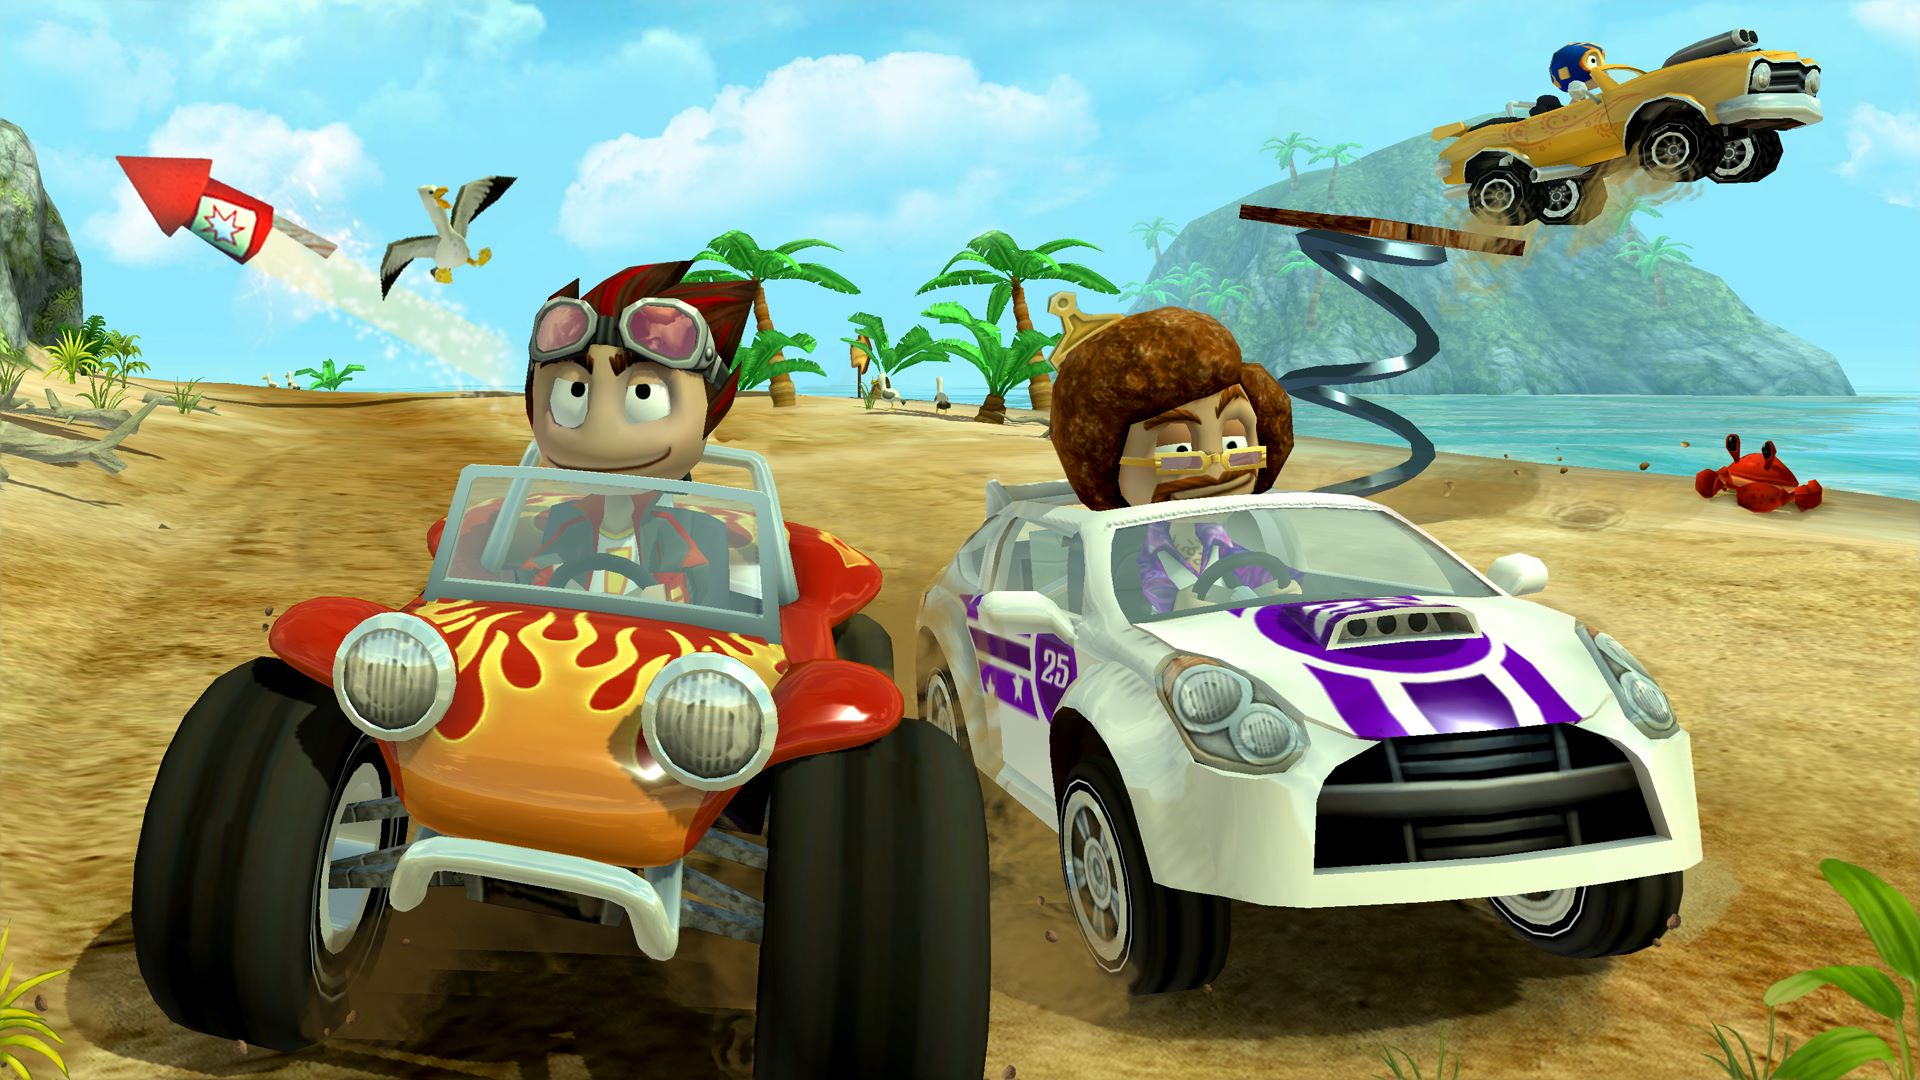 Image currently unavailable. Go to www.generator.bulkhack.com and choose Beach Buggy Racing image, you will be redirect to Beach Buggy Racing Generator site.